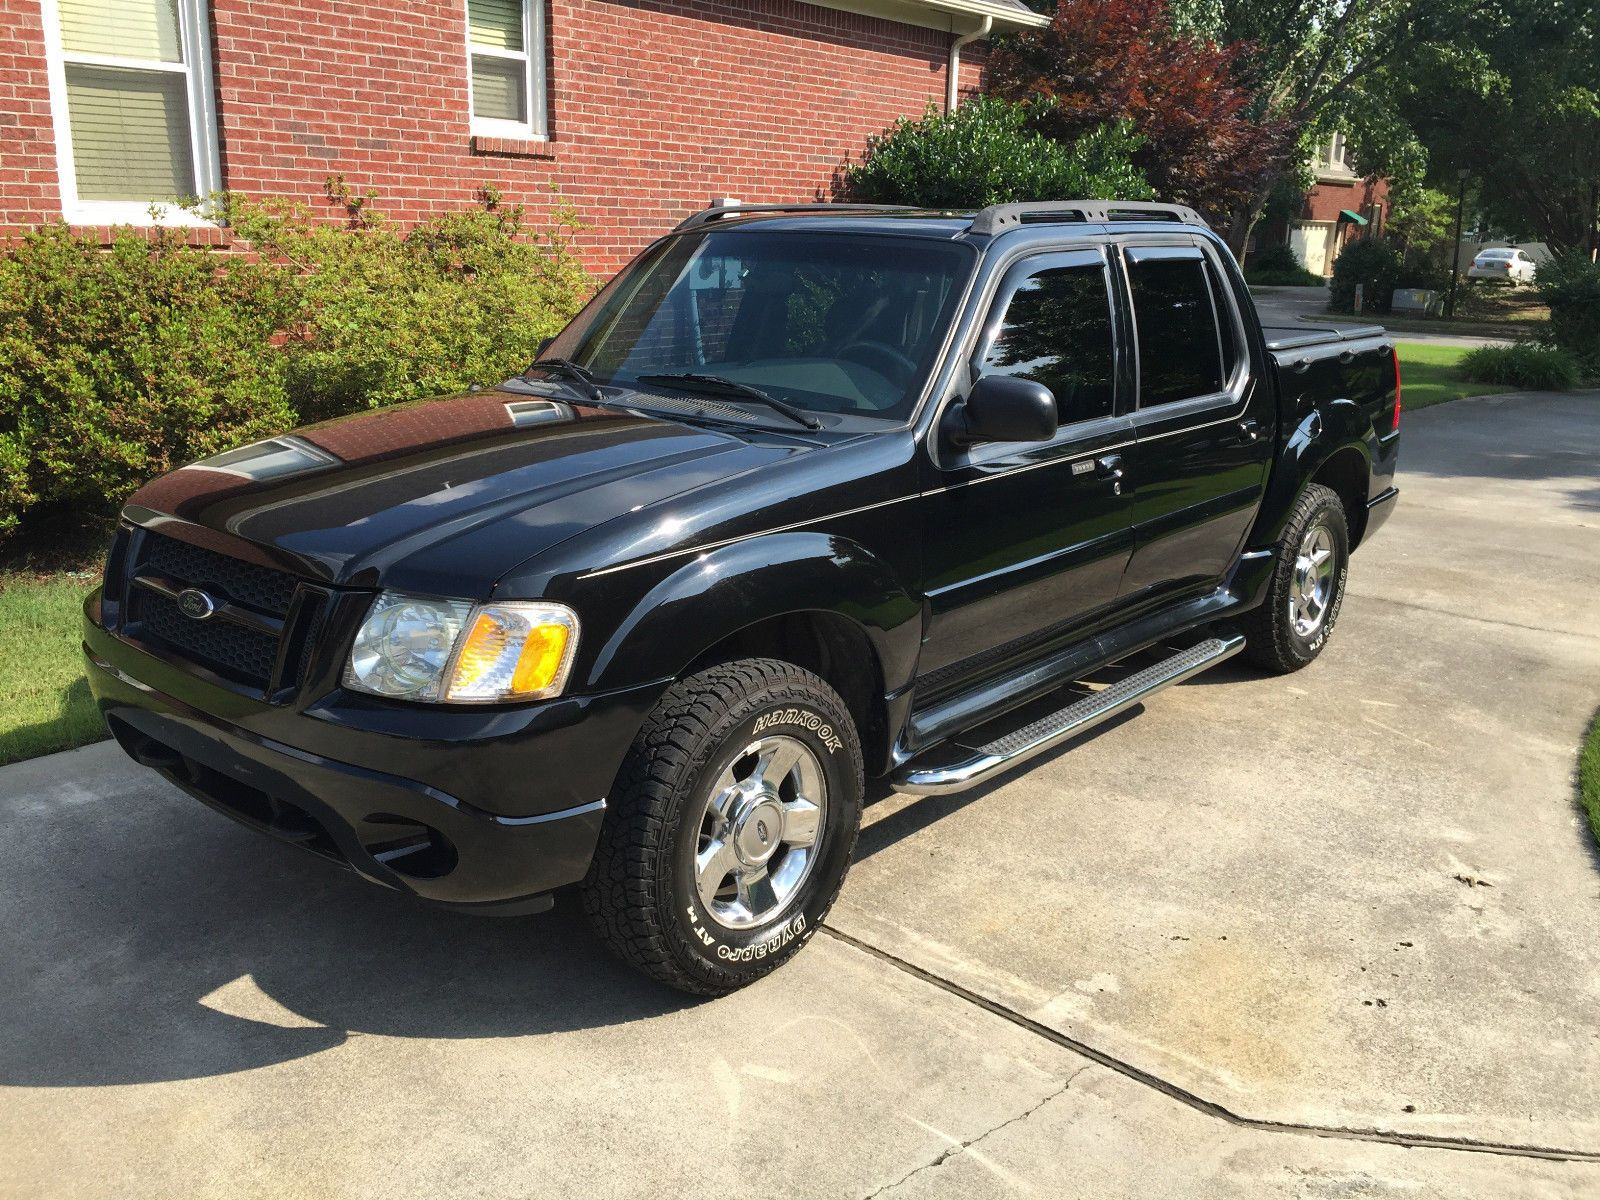 Details about 2004 Ford Explorer Sport Trac